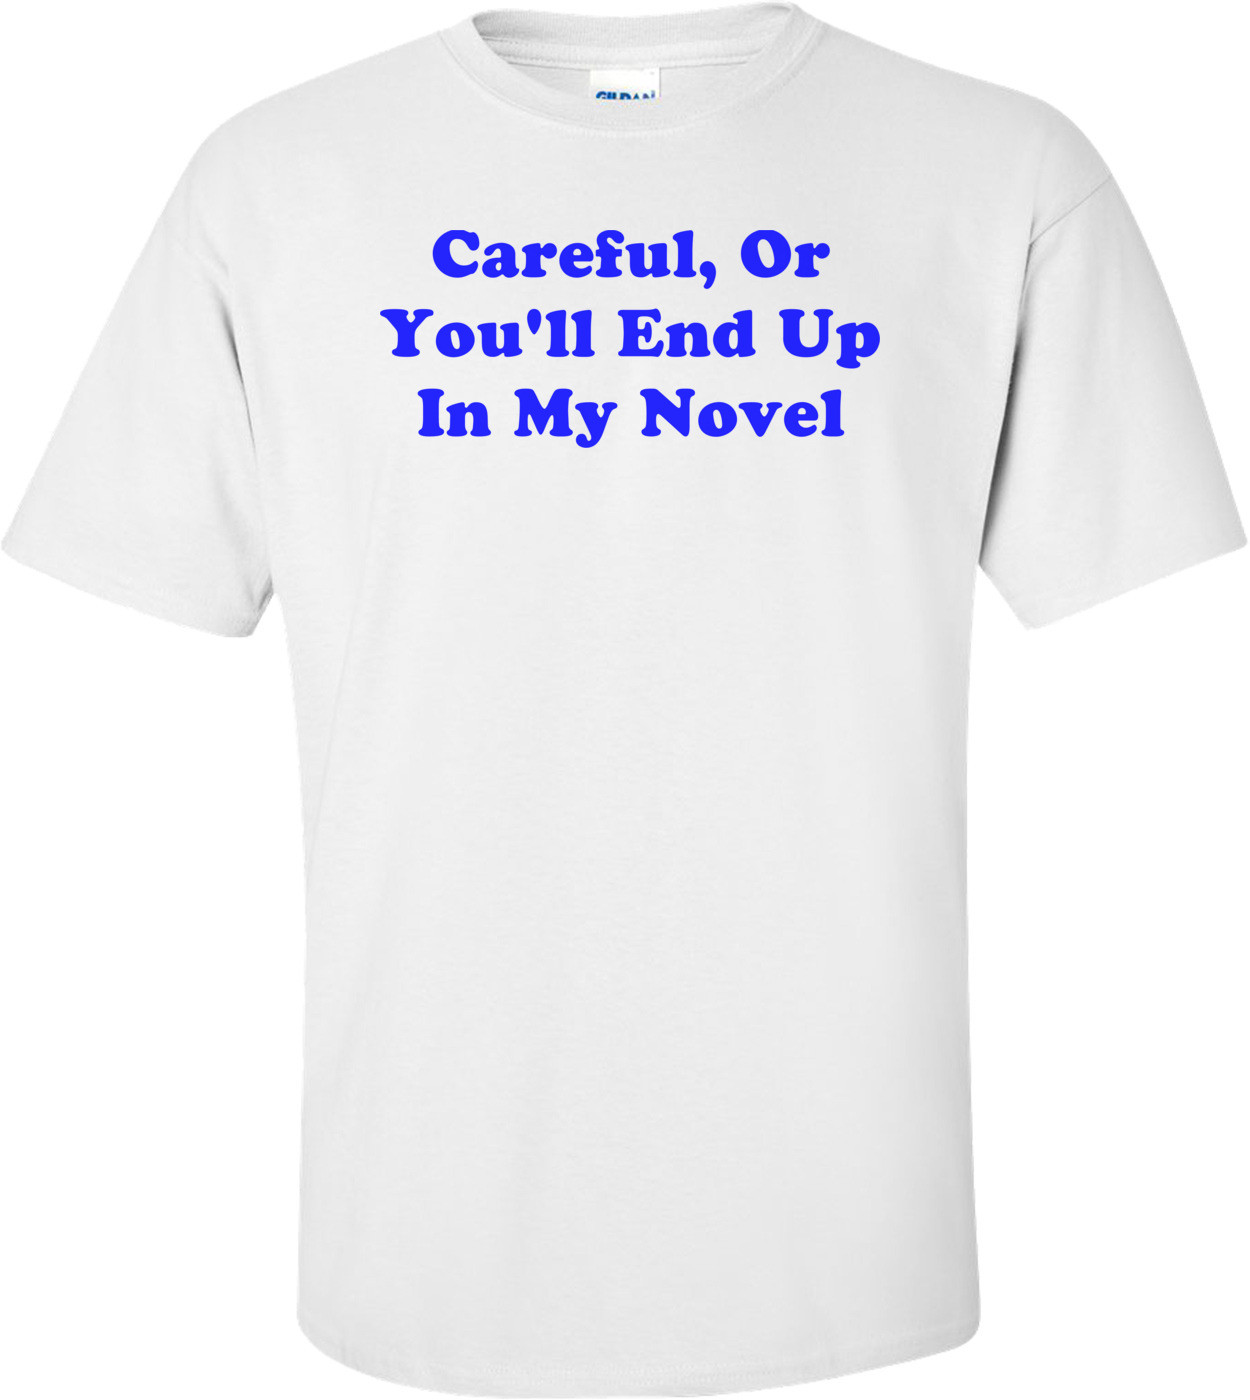 Careful, Or You'll End Up In My Novel T-Shirt